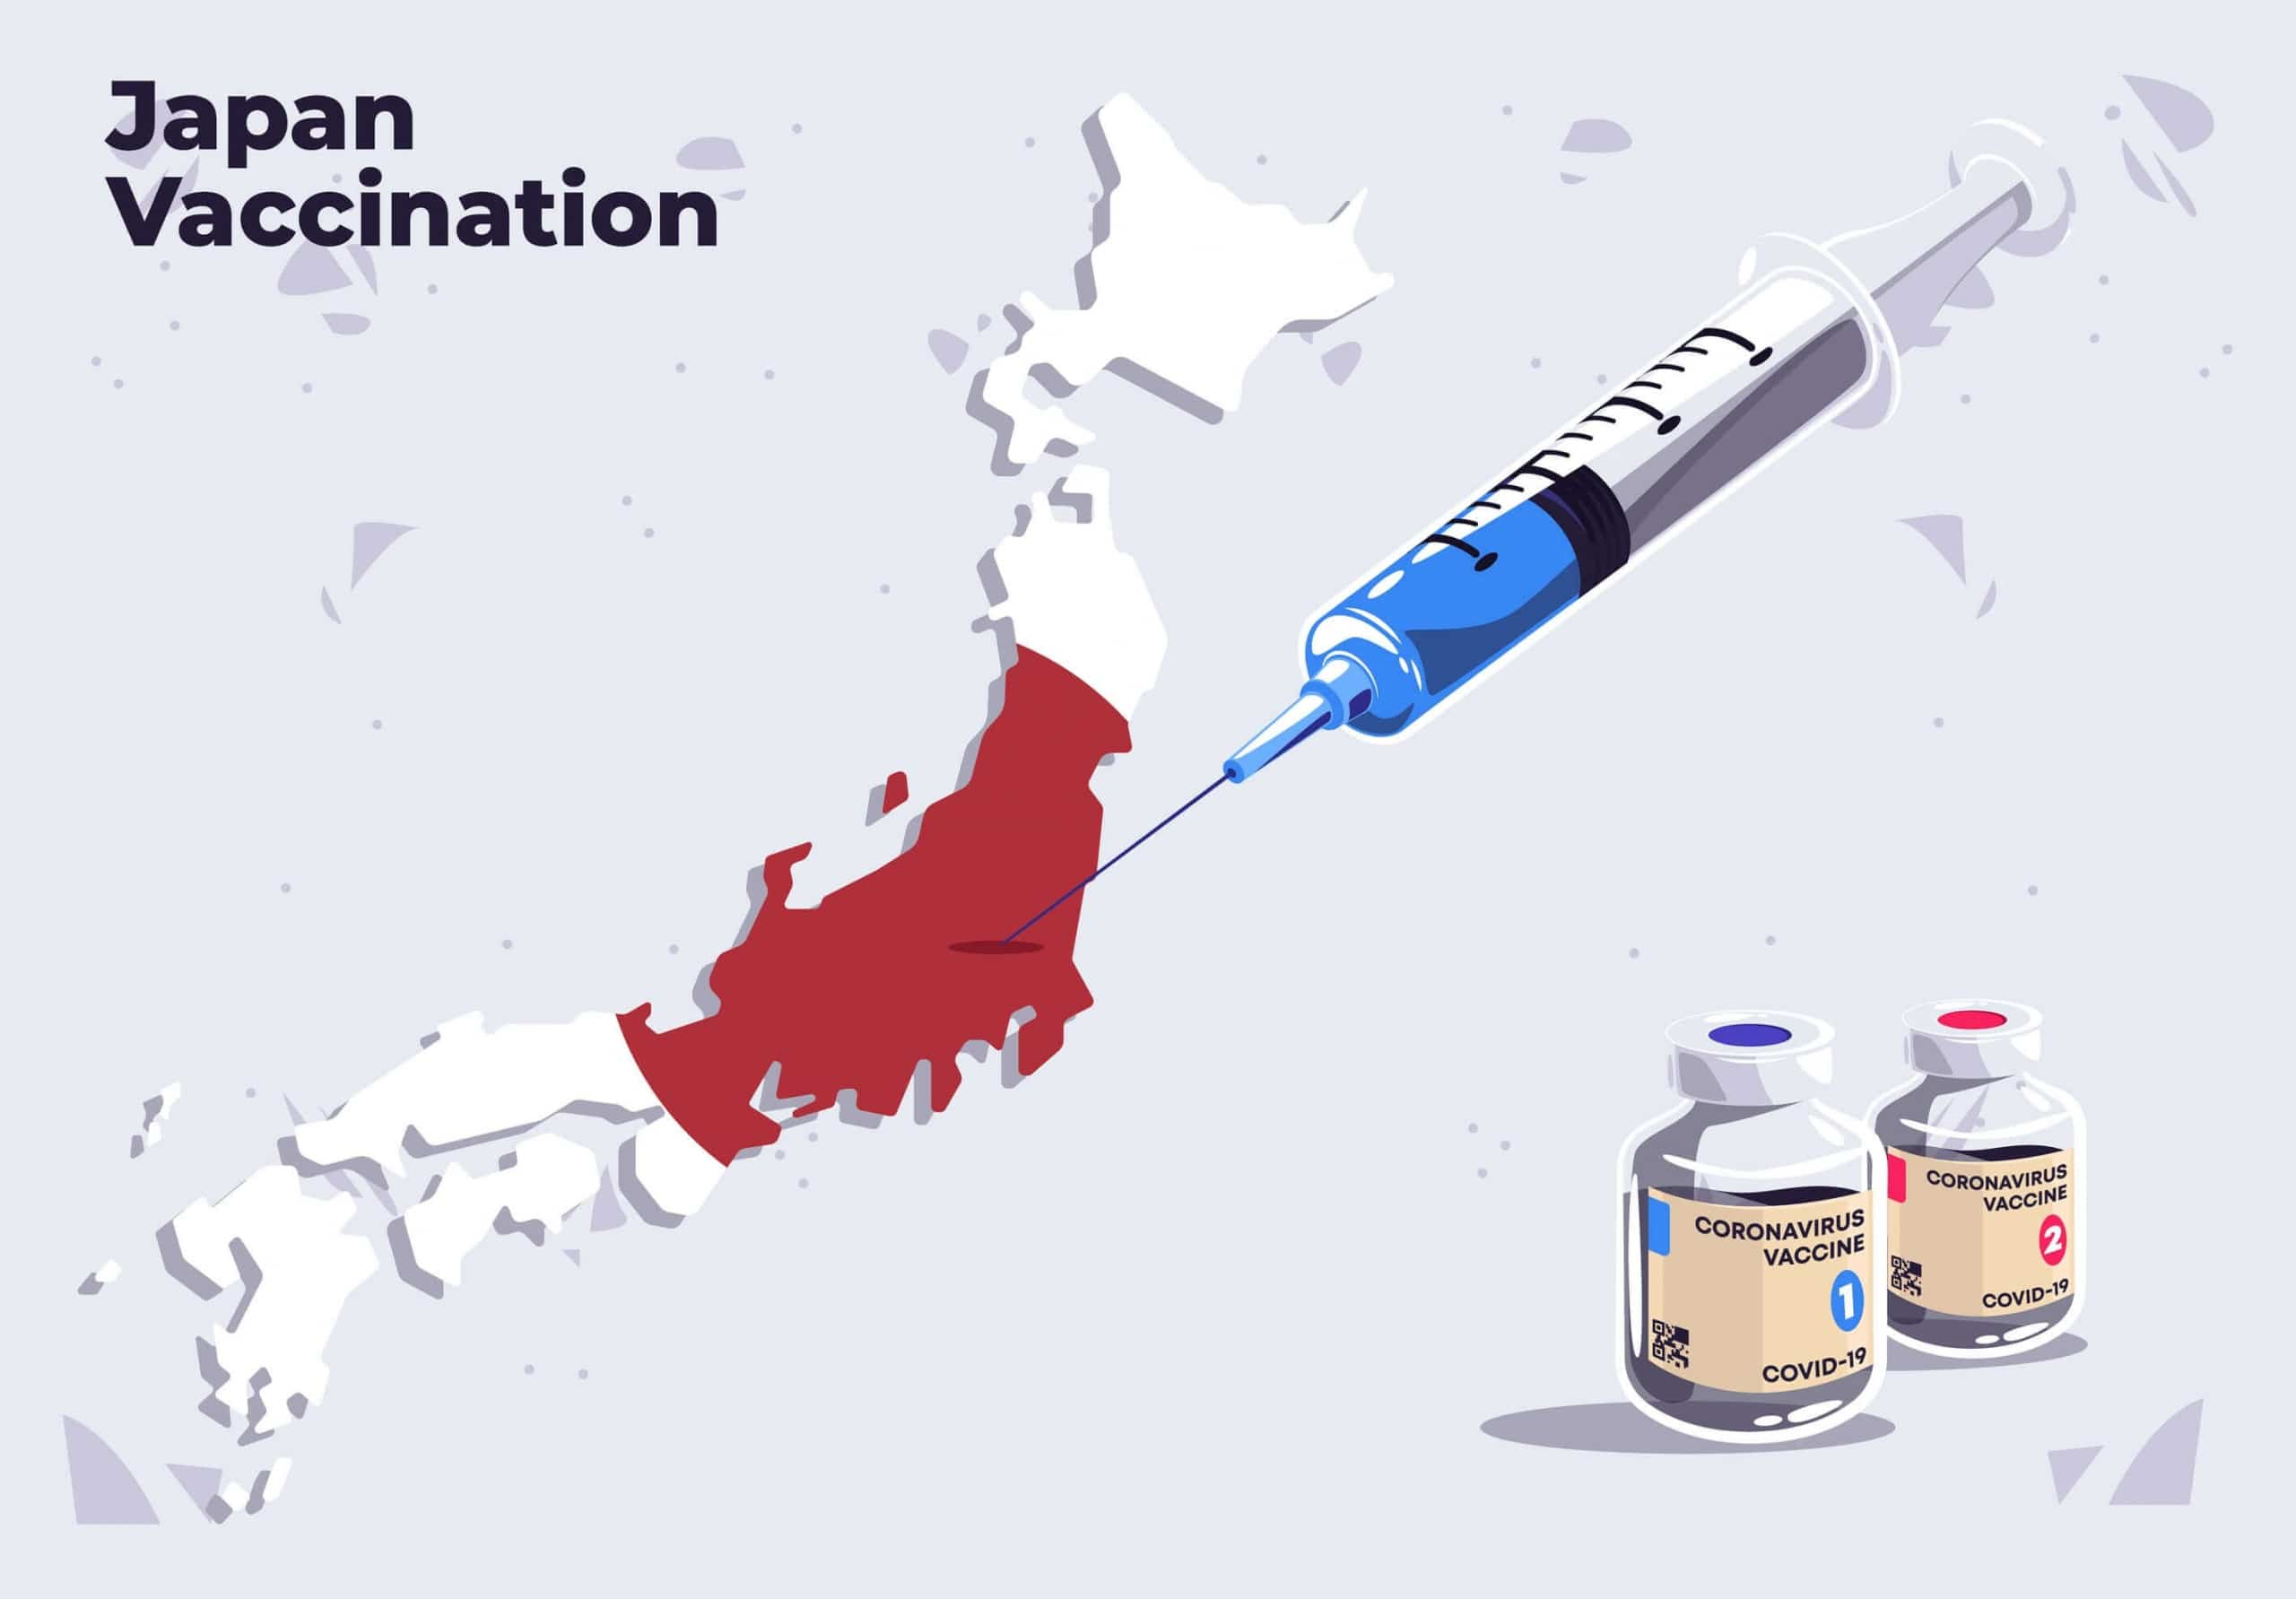 Vaccinations side will be more concentrated by Japanese Government